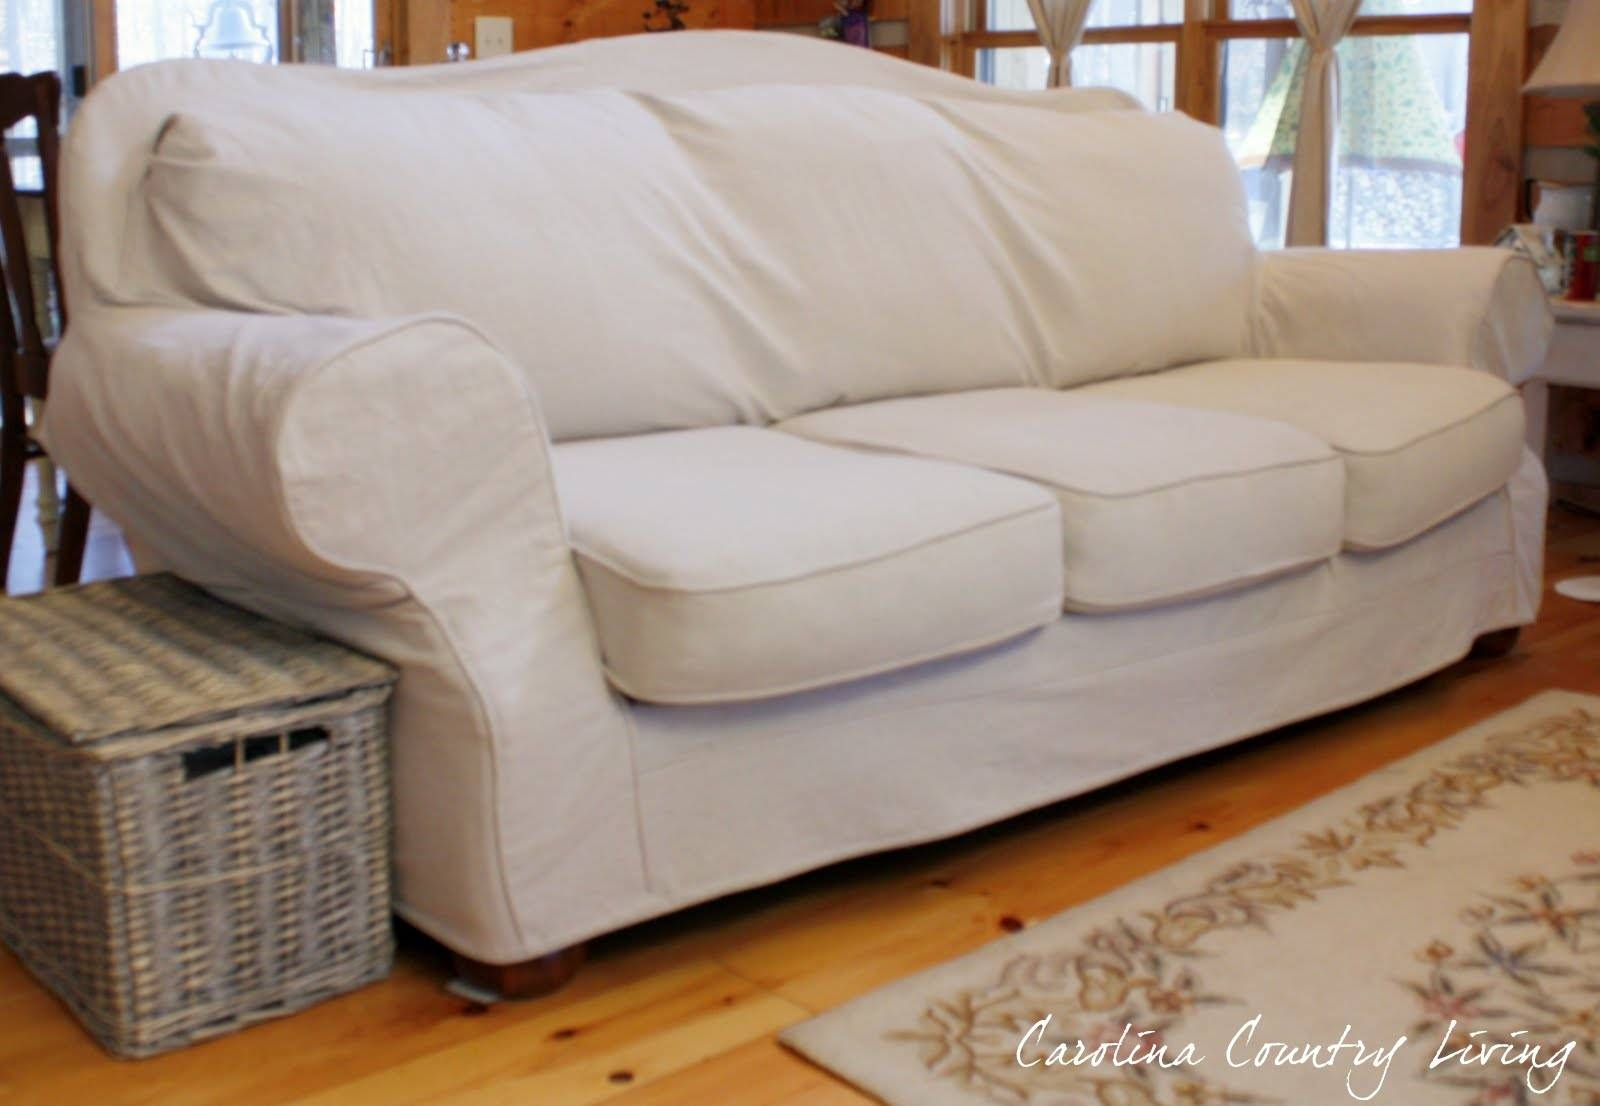 Carolina Country Living: Drop Cloth Sofa Slipcover intended for Camelback Slipcovers (Image 3 of 15)